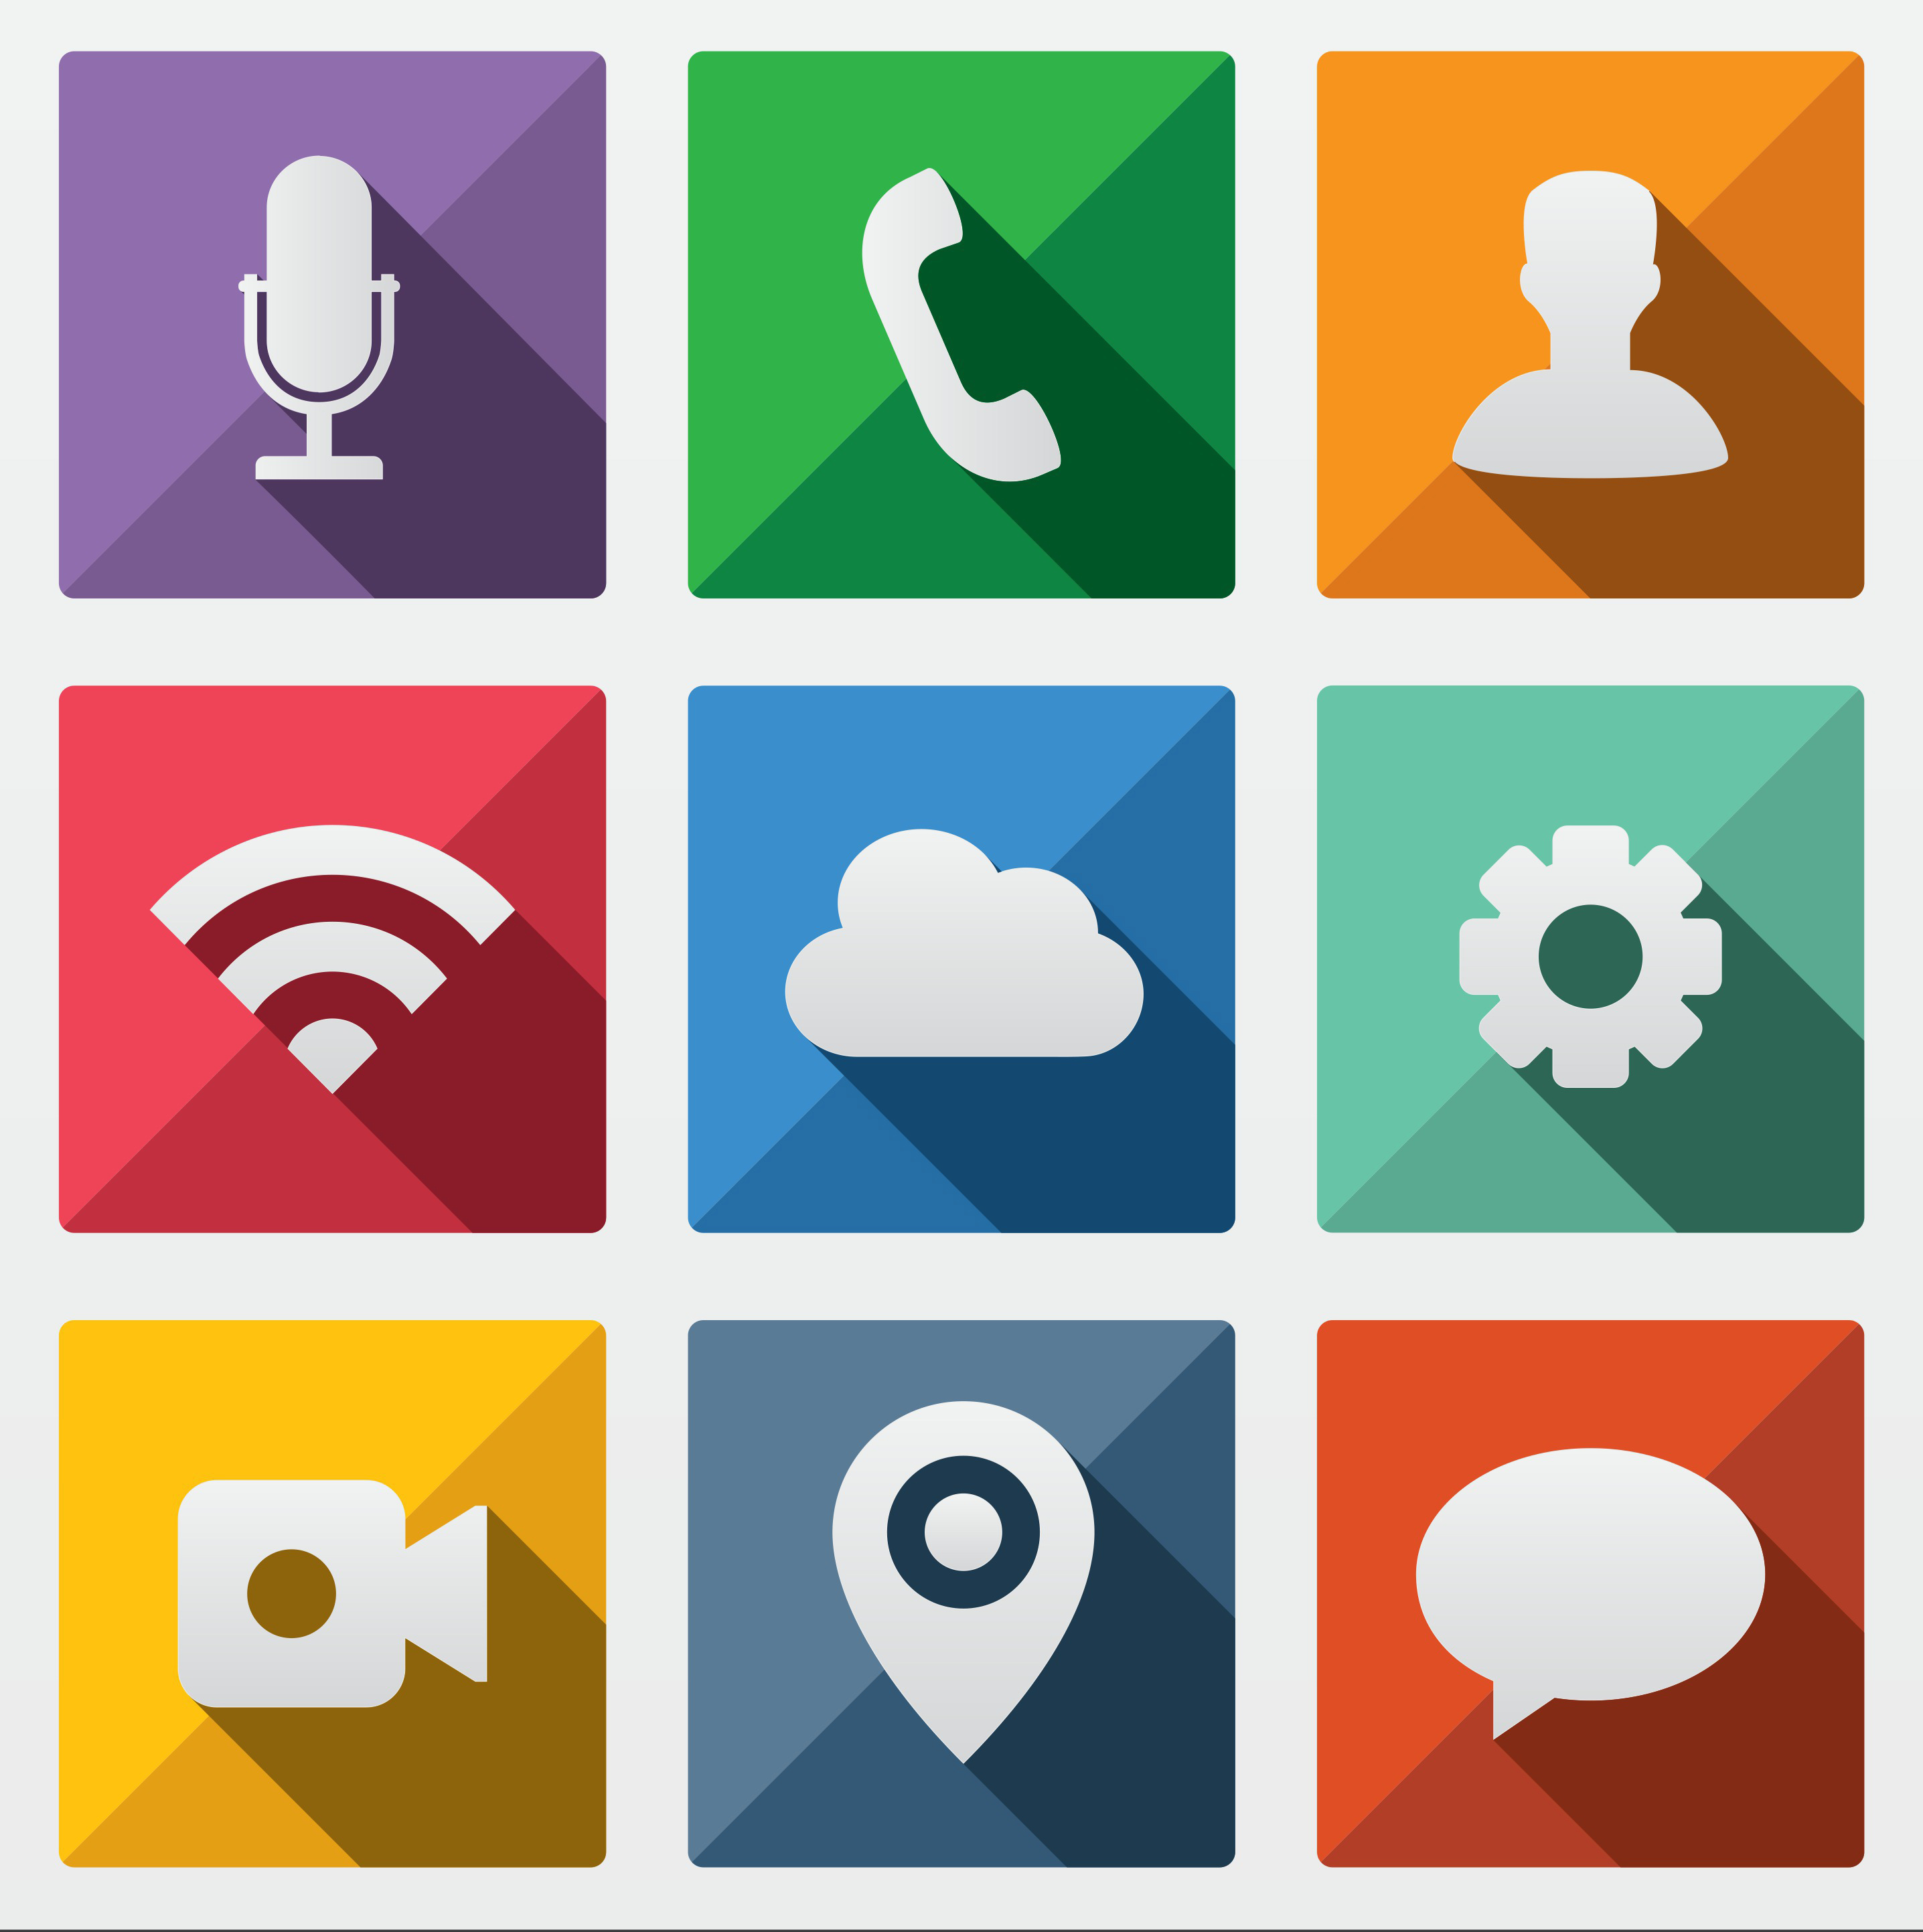 App Icon Design: 5 Predictions For Cloud Computing In 2015